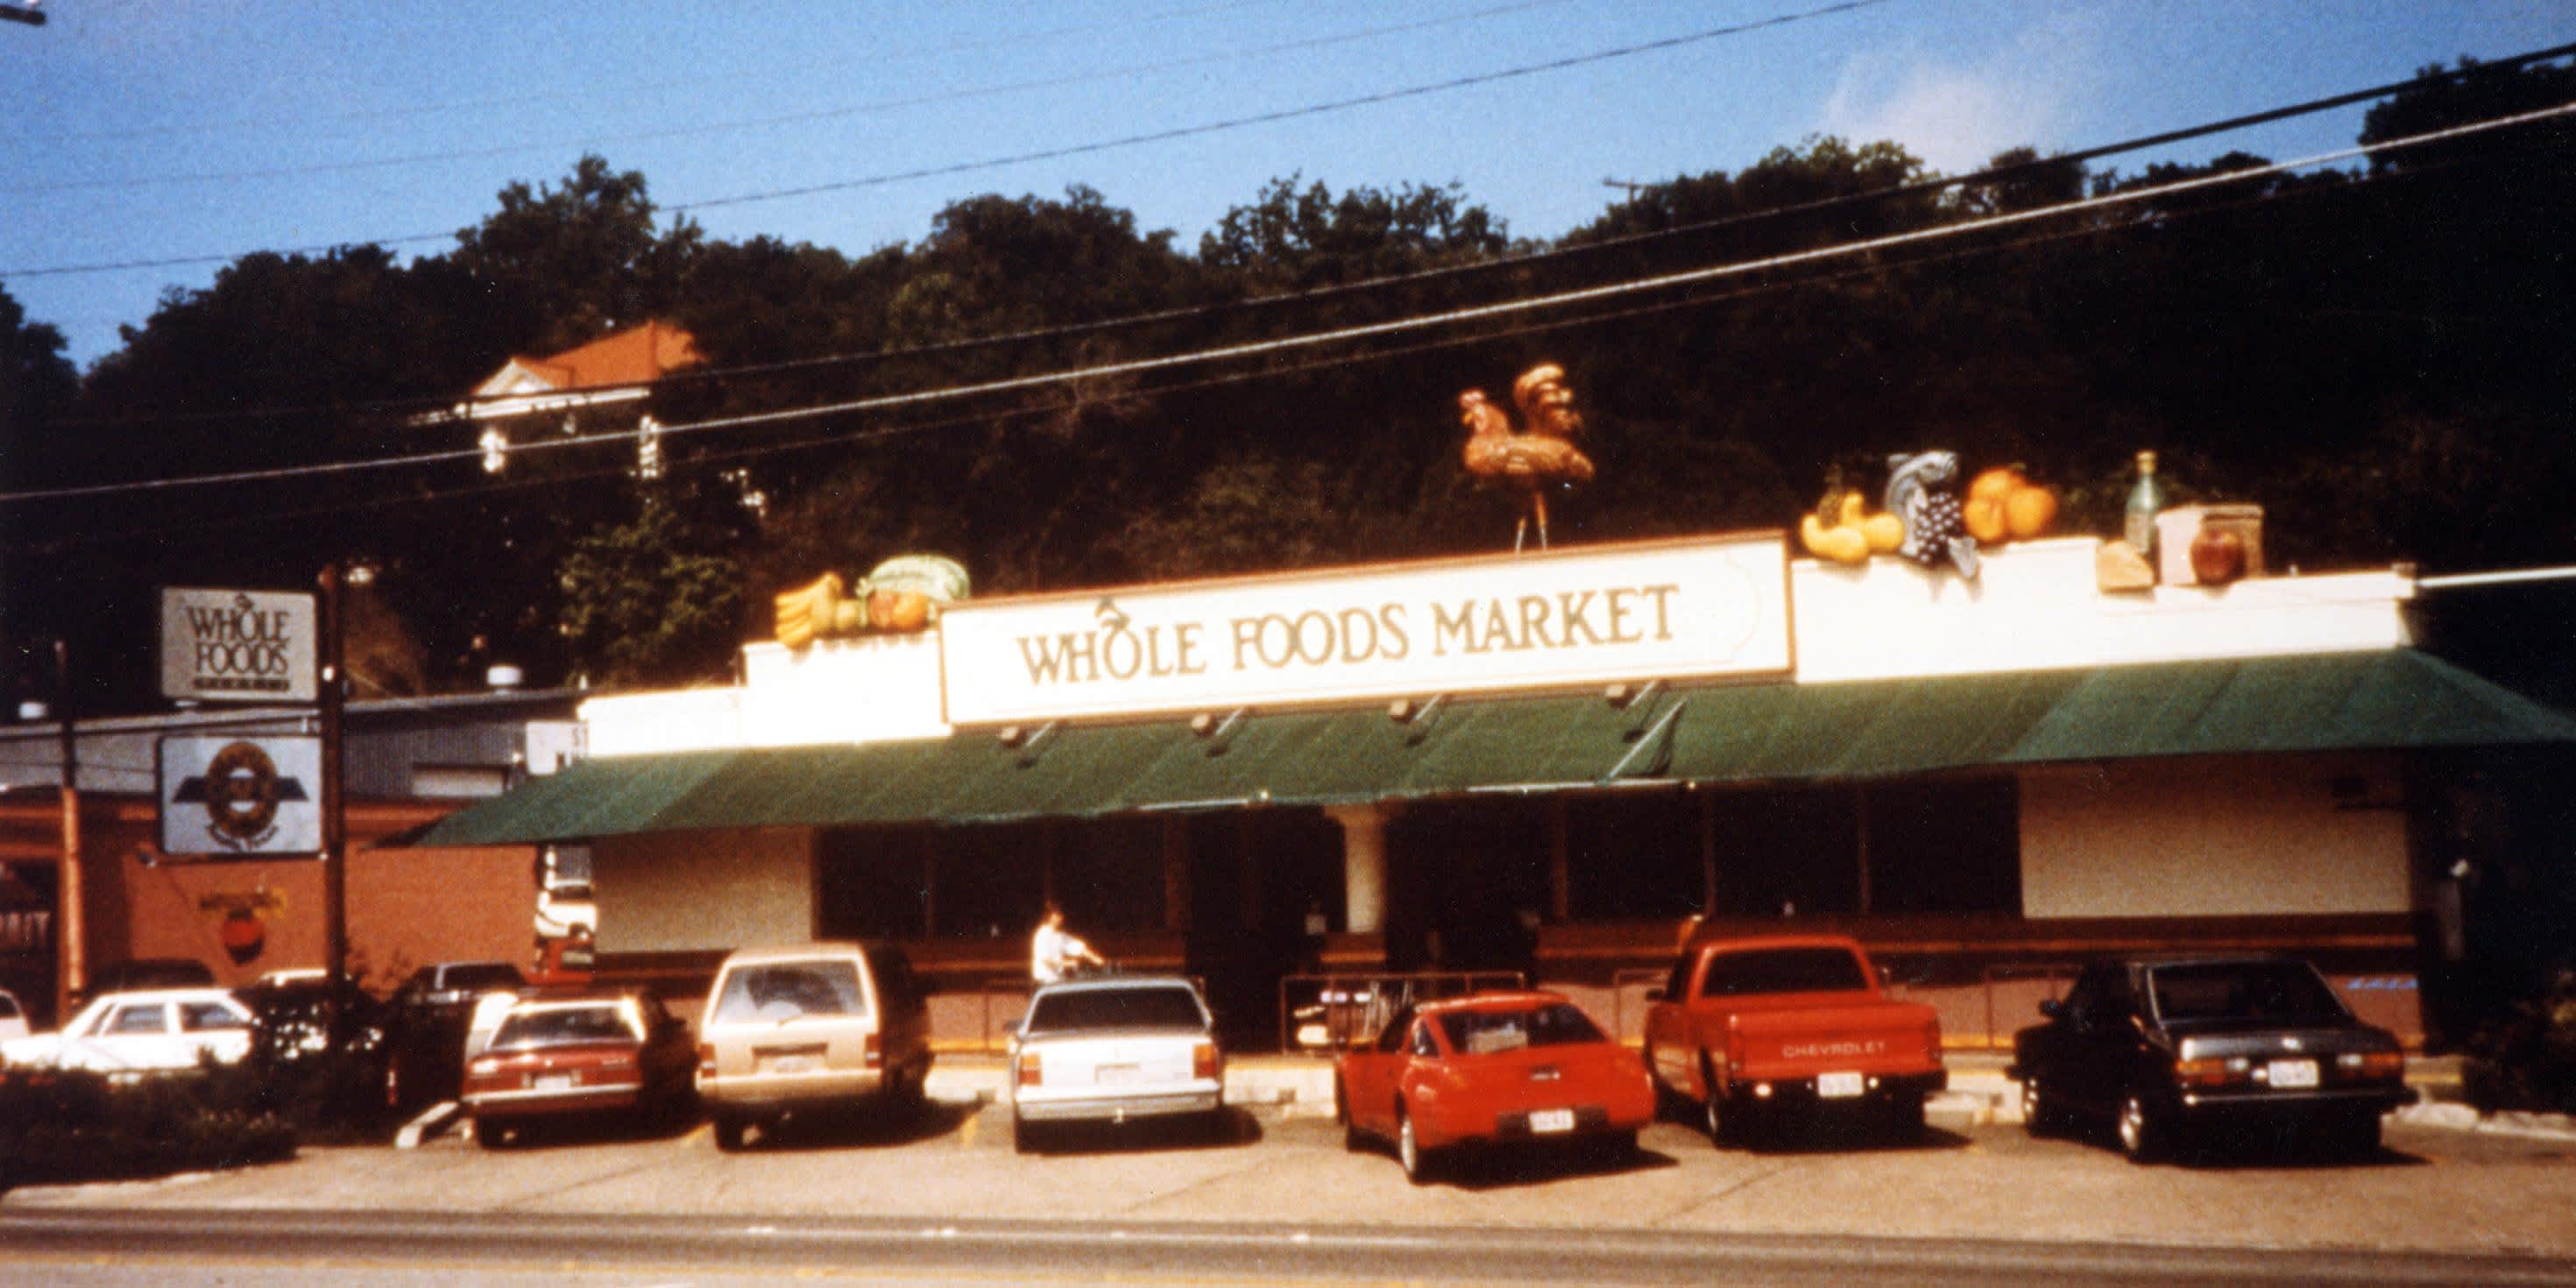 How John Mackey started Whole Foods, which Amazon bought for